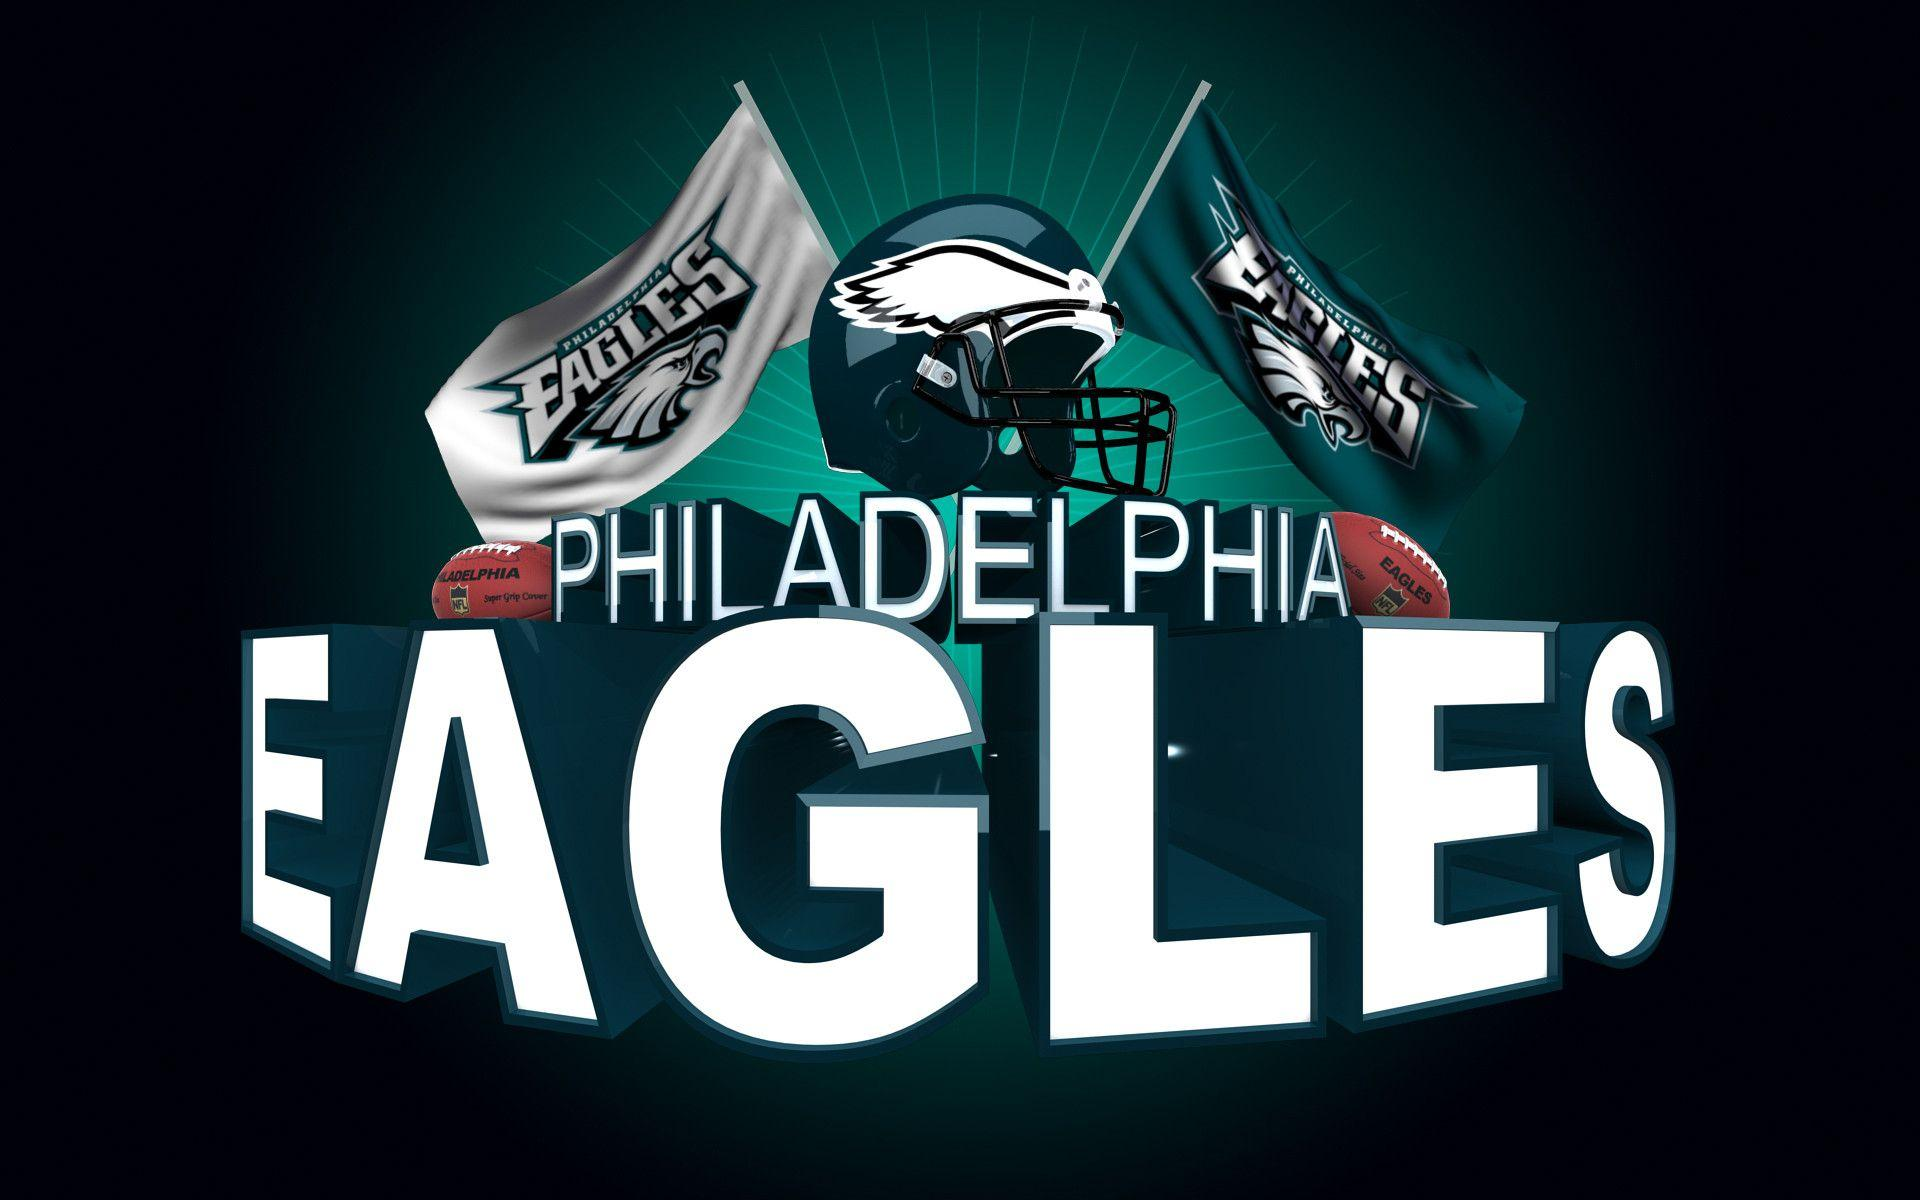 Philadelphia Eagles Nfl Football Desktop Photo #96891 - The HD ...